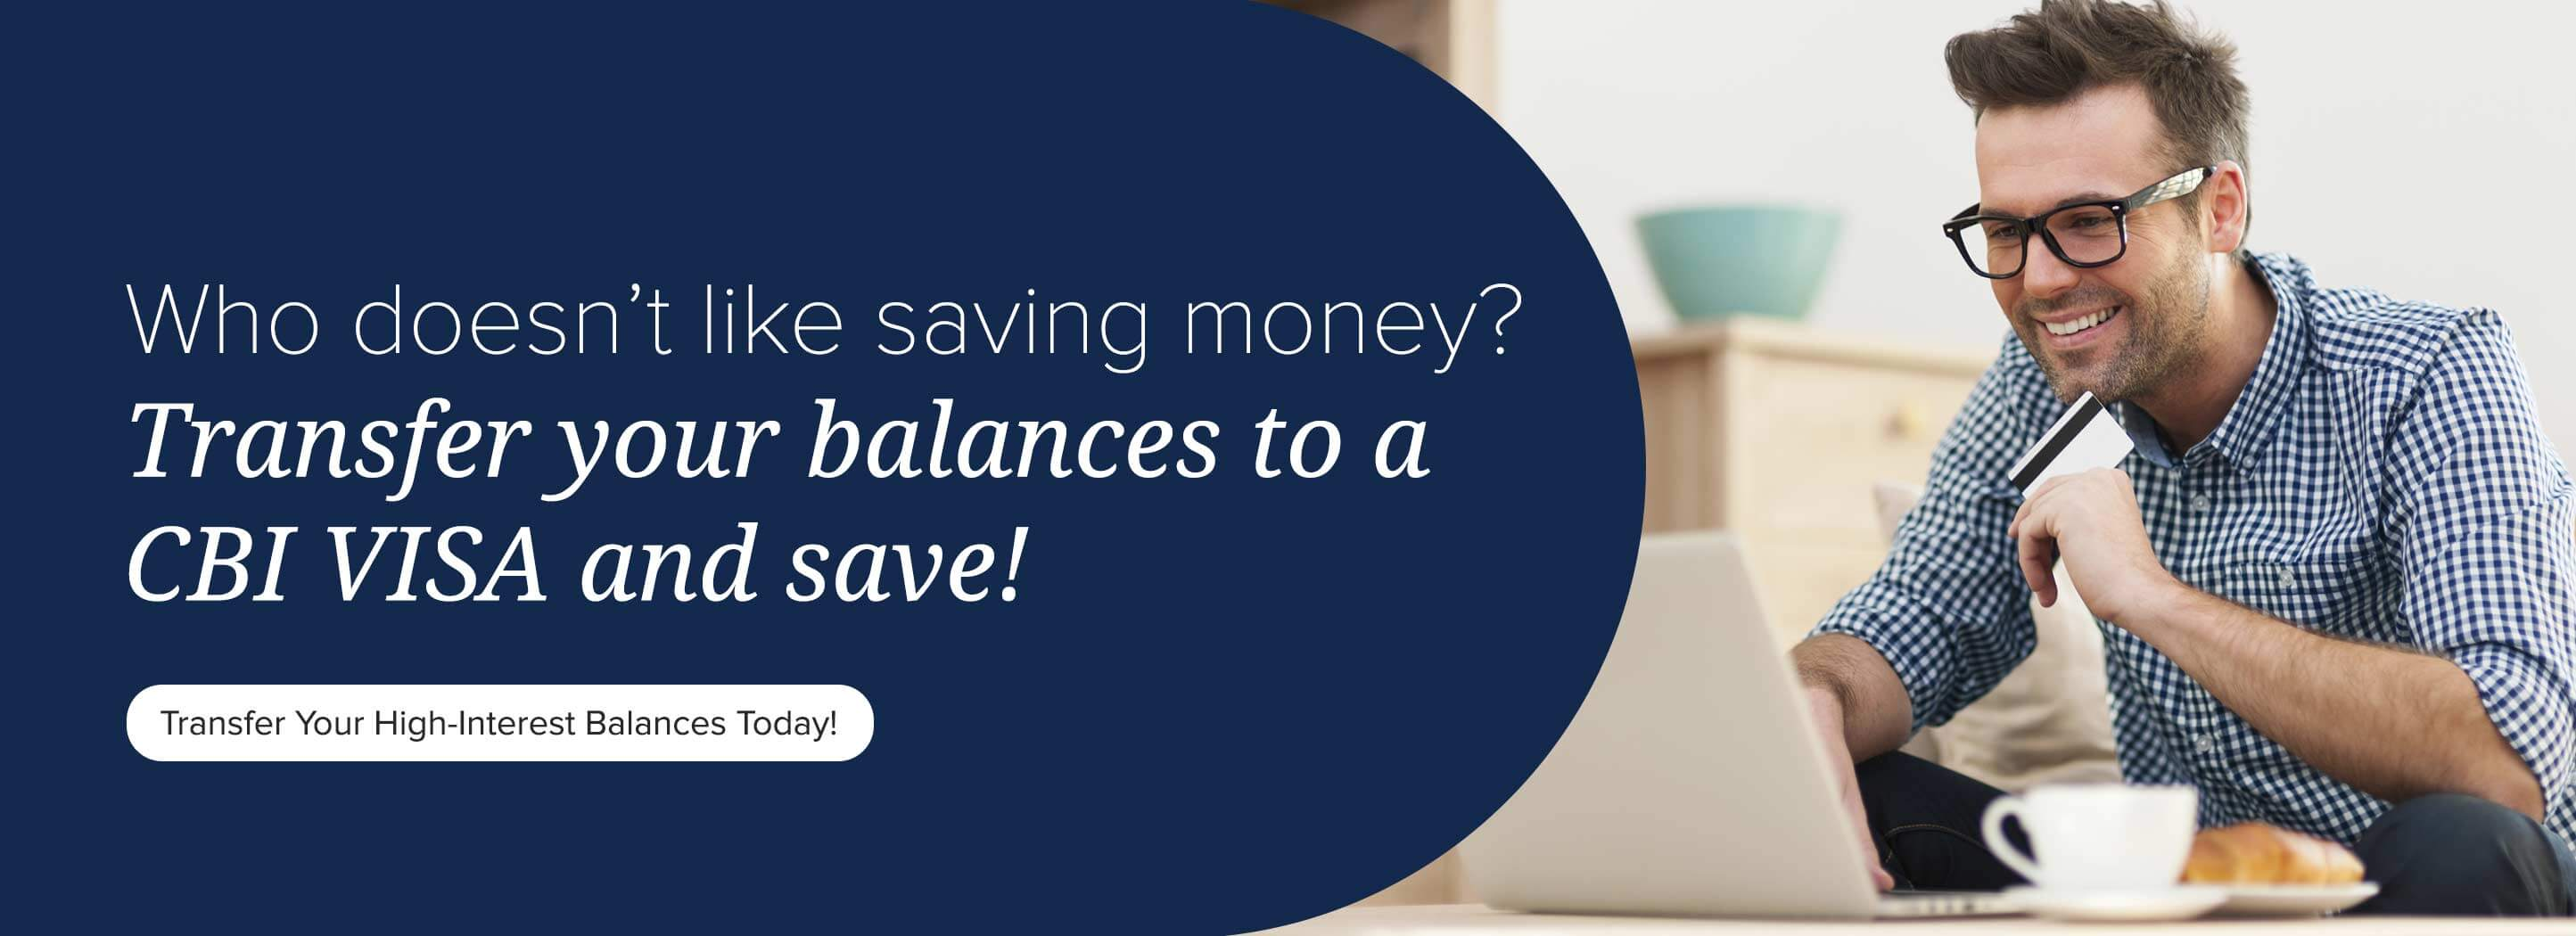 Who doesn't like saving money? Transfer your balances to a CBI Visa and save! Transfer your High-Interest balances today!